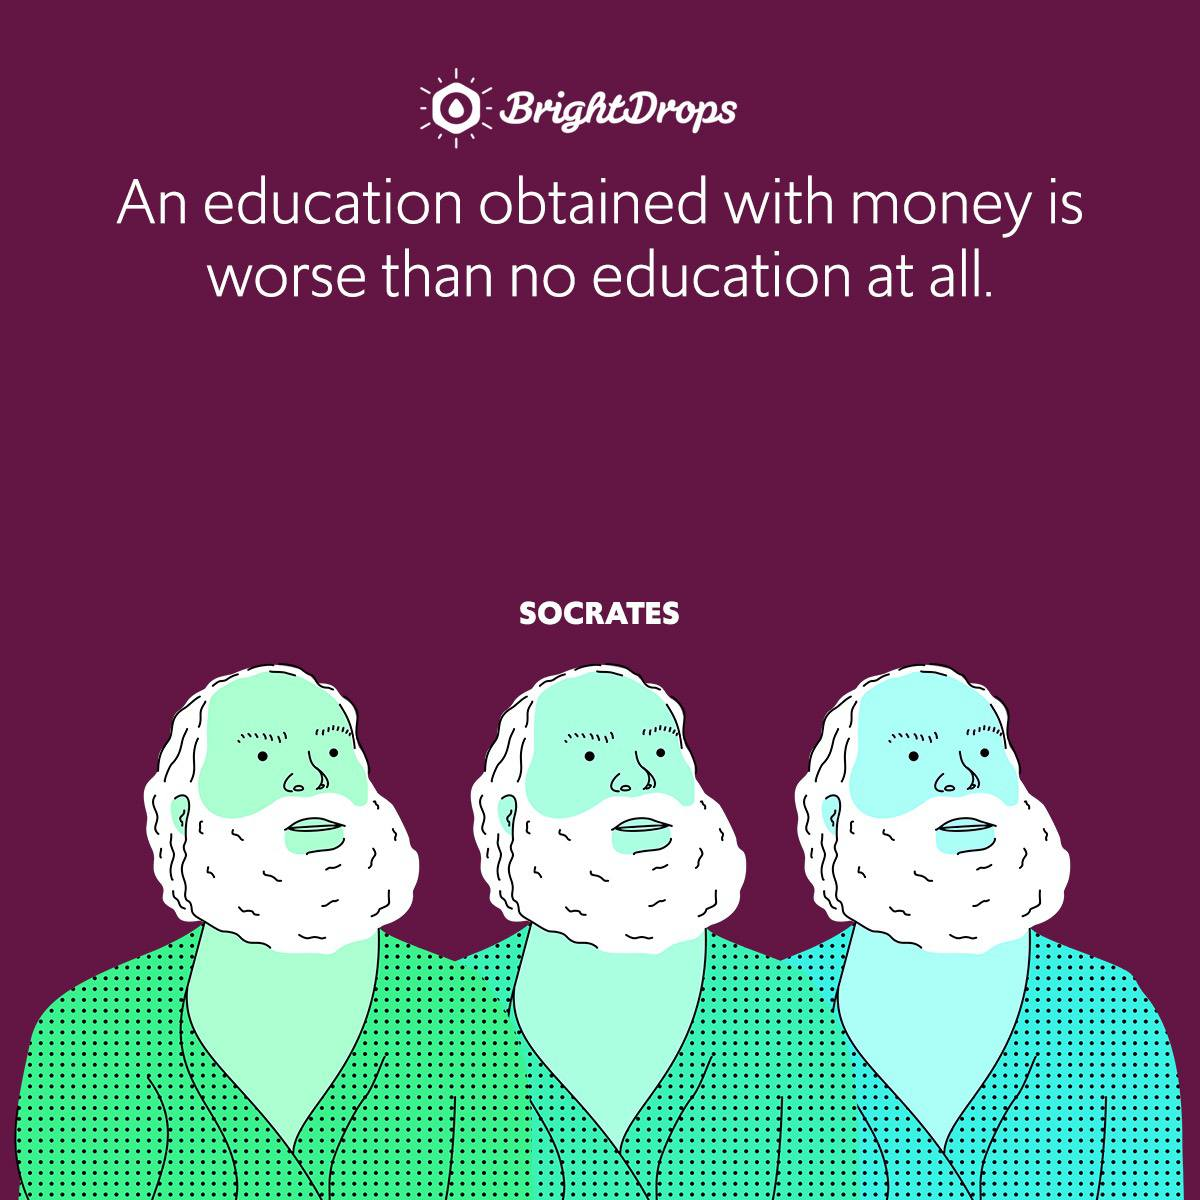 An education obtained with money is worse than no education at all.